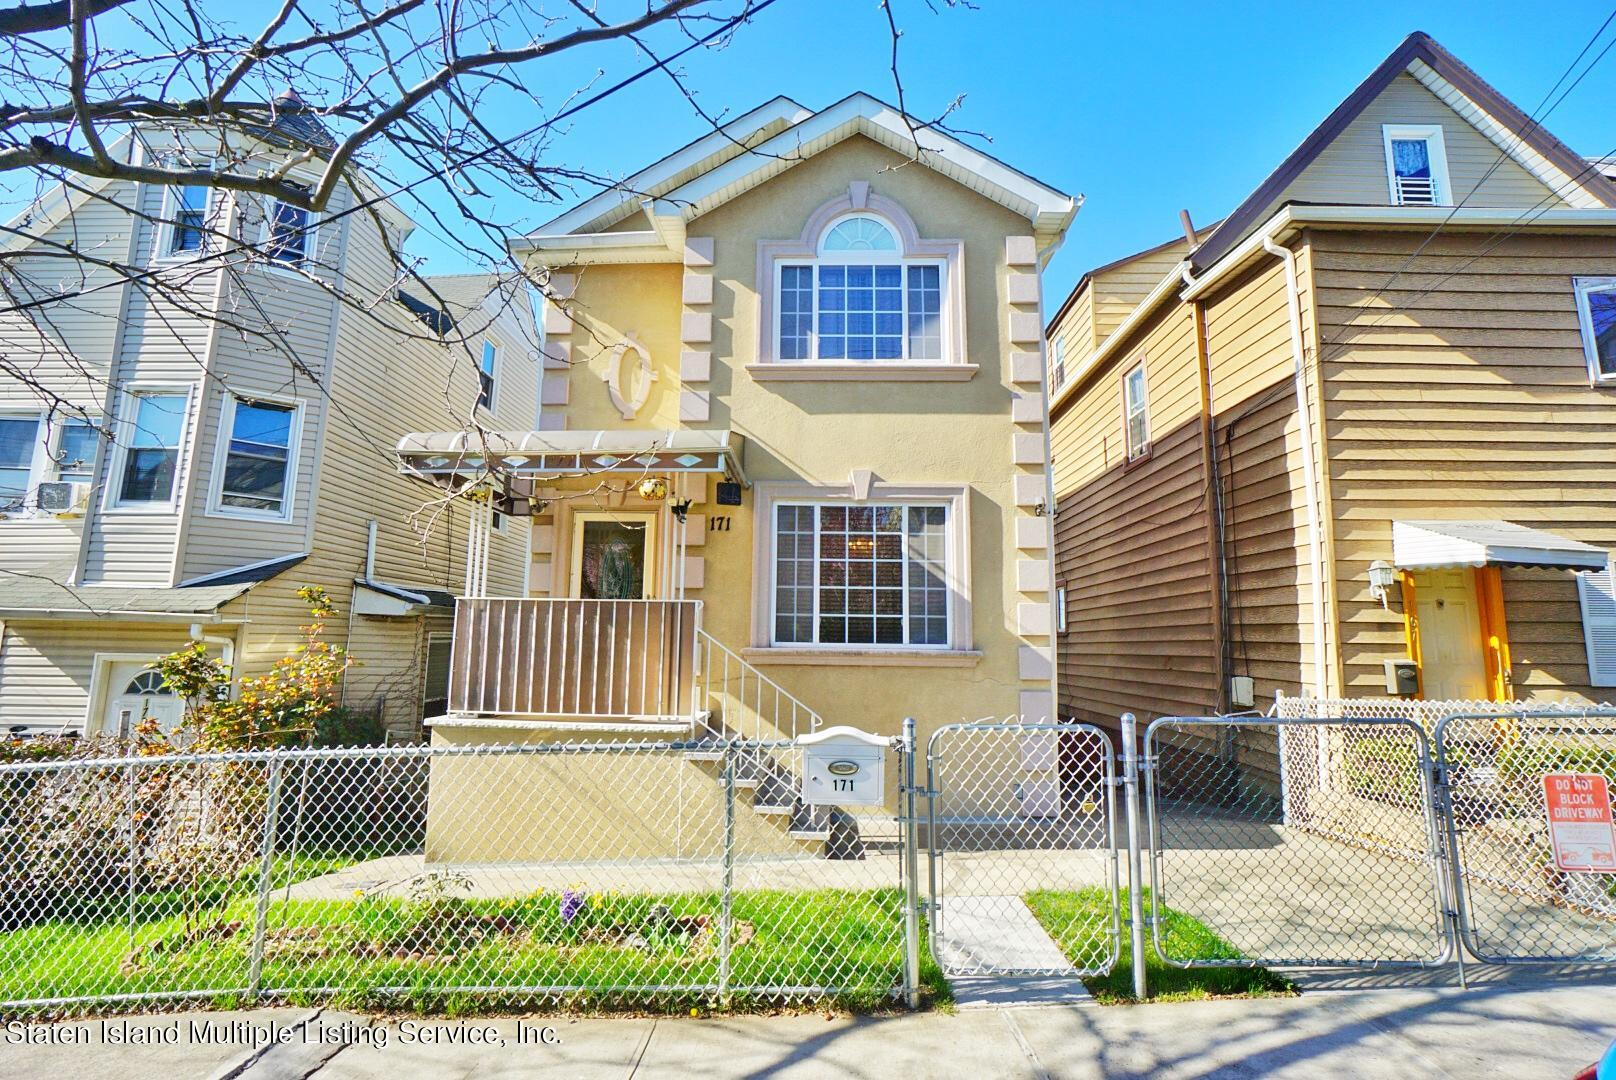 Single Family - Detached in St. George - 171 Benziger Avenue  Staten Island, NY 10301